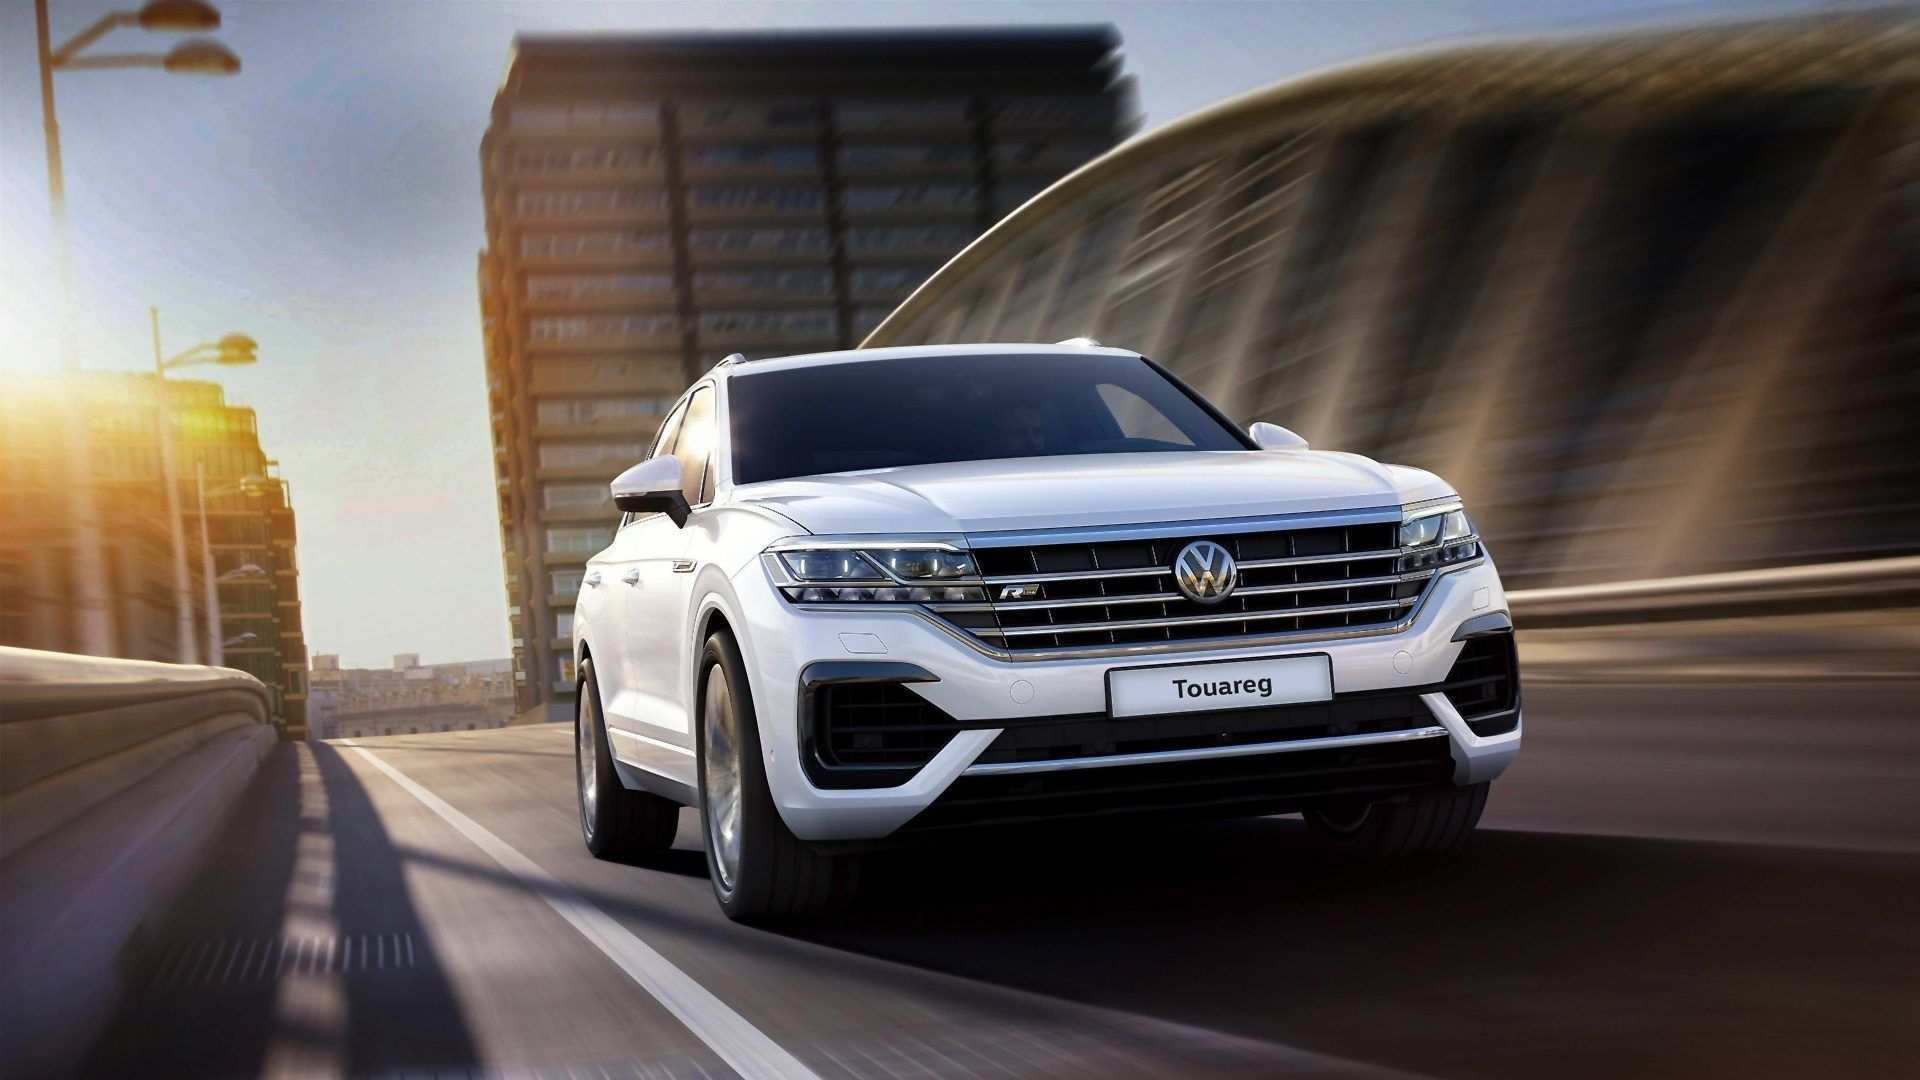 17 Concept of Volkswagen Touareg 2019 Price In Kuwait Review Engine for Volkswagen Touareg 2019 Price In Kuwait Review